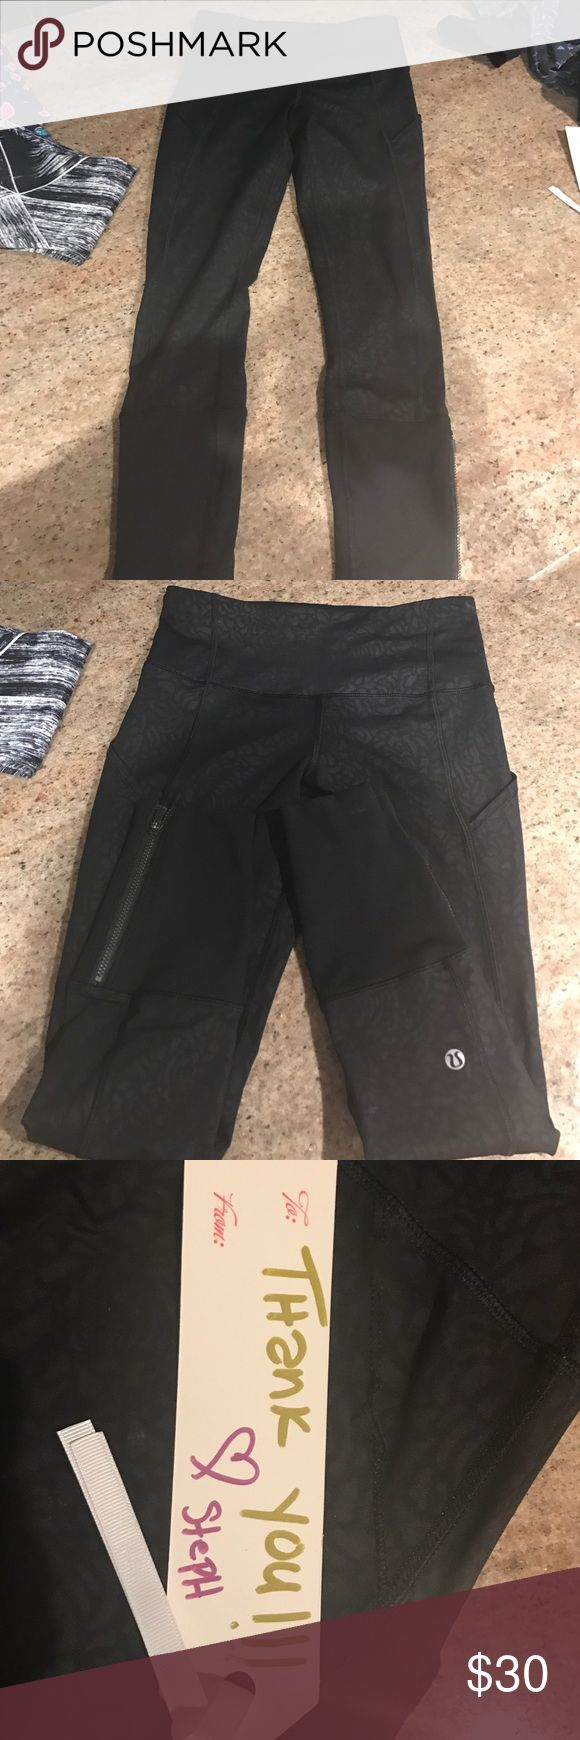 Lululemon legging Size 4 please note these are new but got hung on a zipper so a tread is torn but does not affect pants and no holes 3 picture zoom in lululemon athletica Pants Leggings